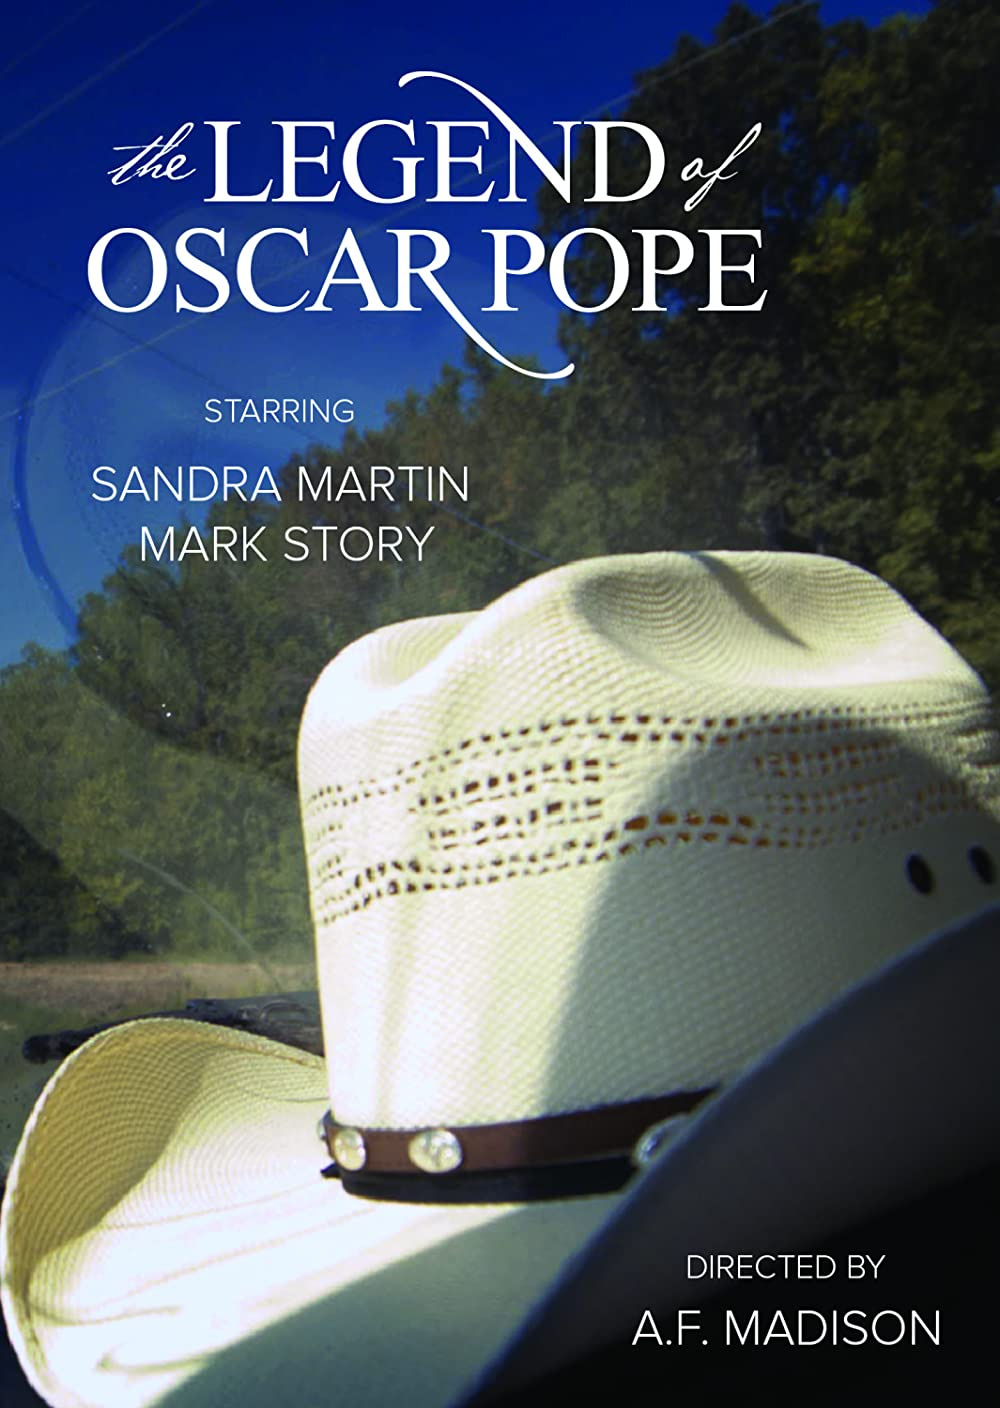 The Legend of Oscar Pope 2016